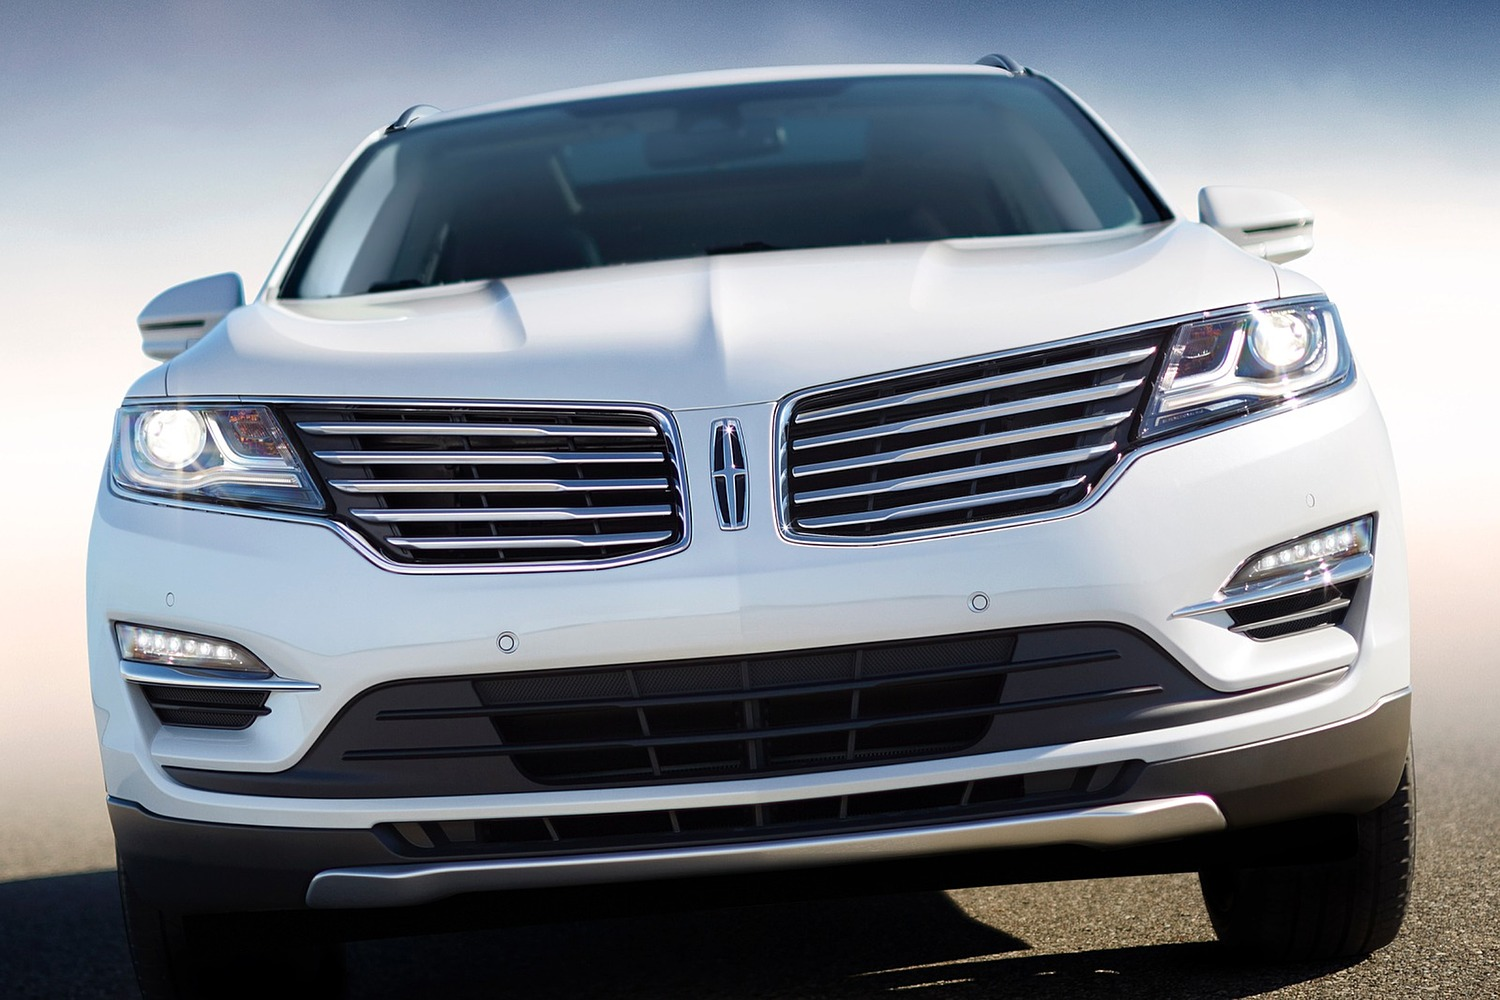 Lincoln MKC Select 4dr SUV Exterior (2016 model year shown)